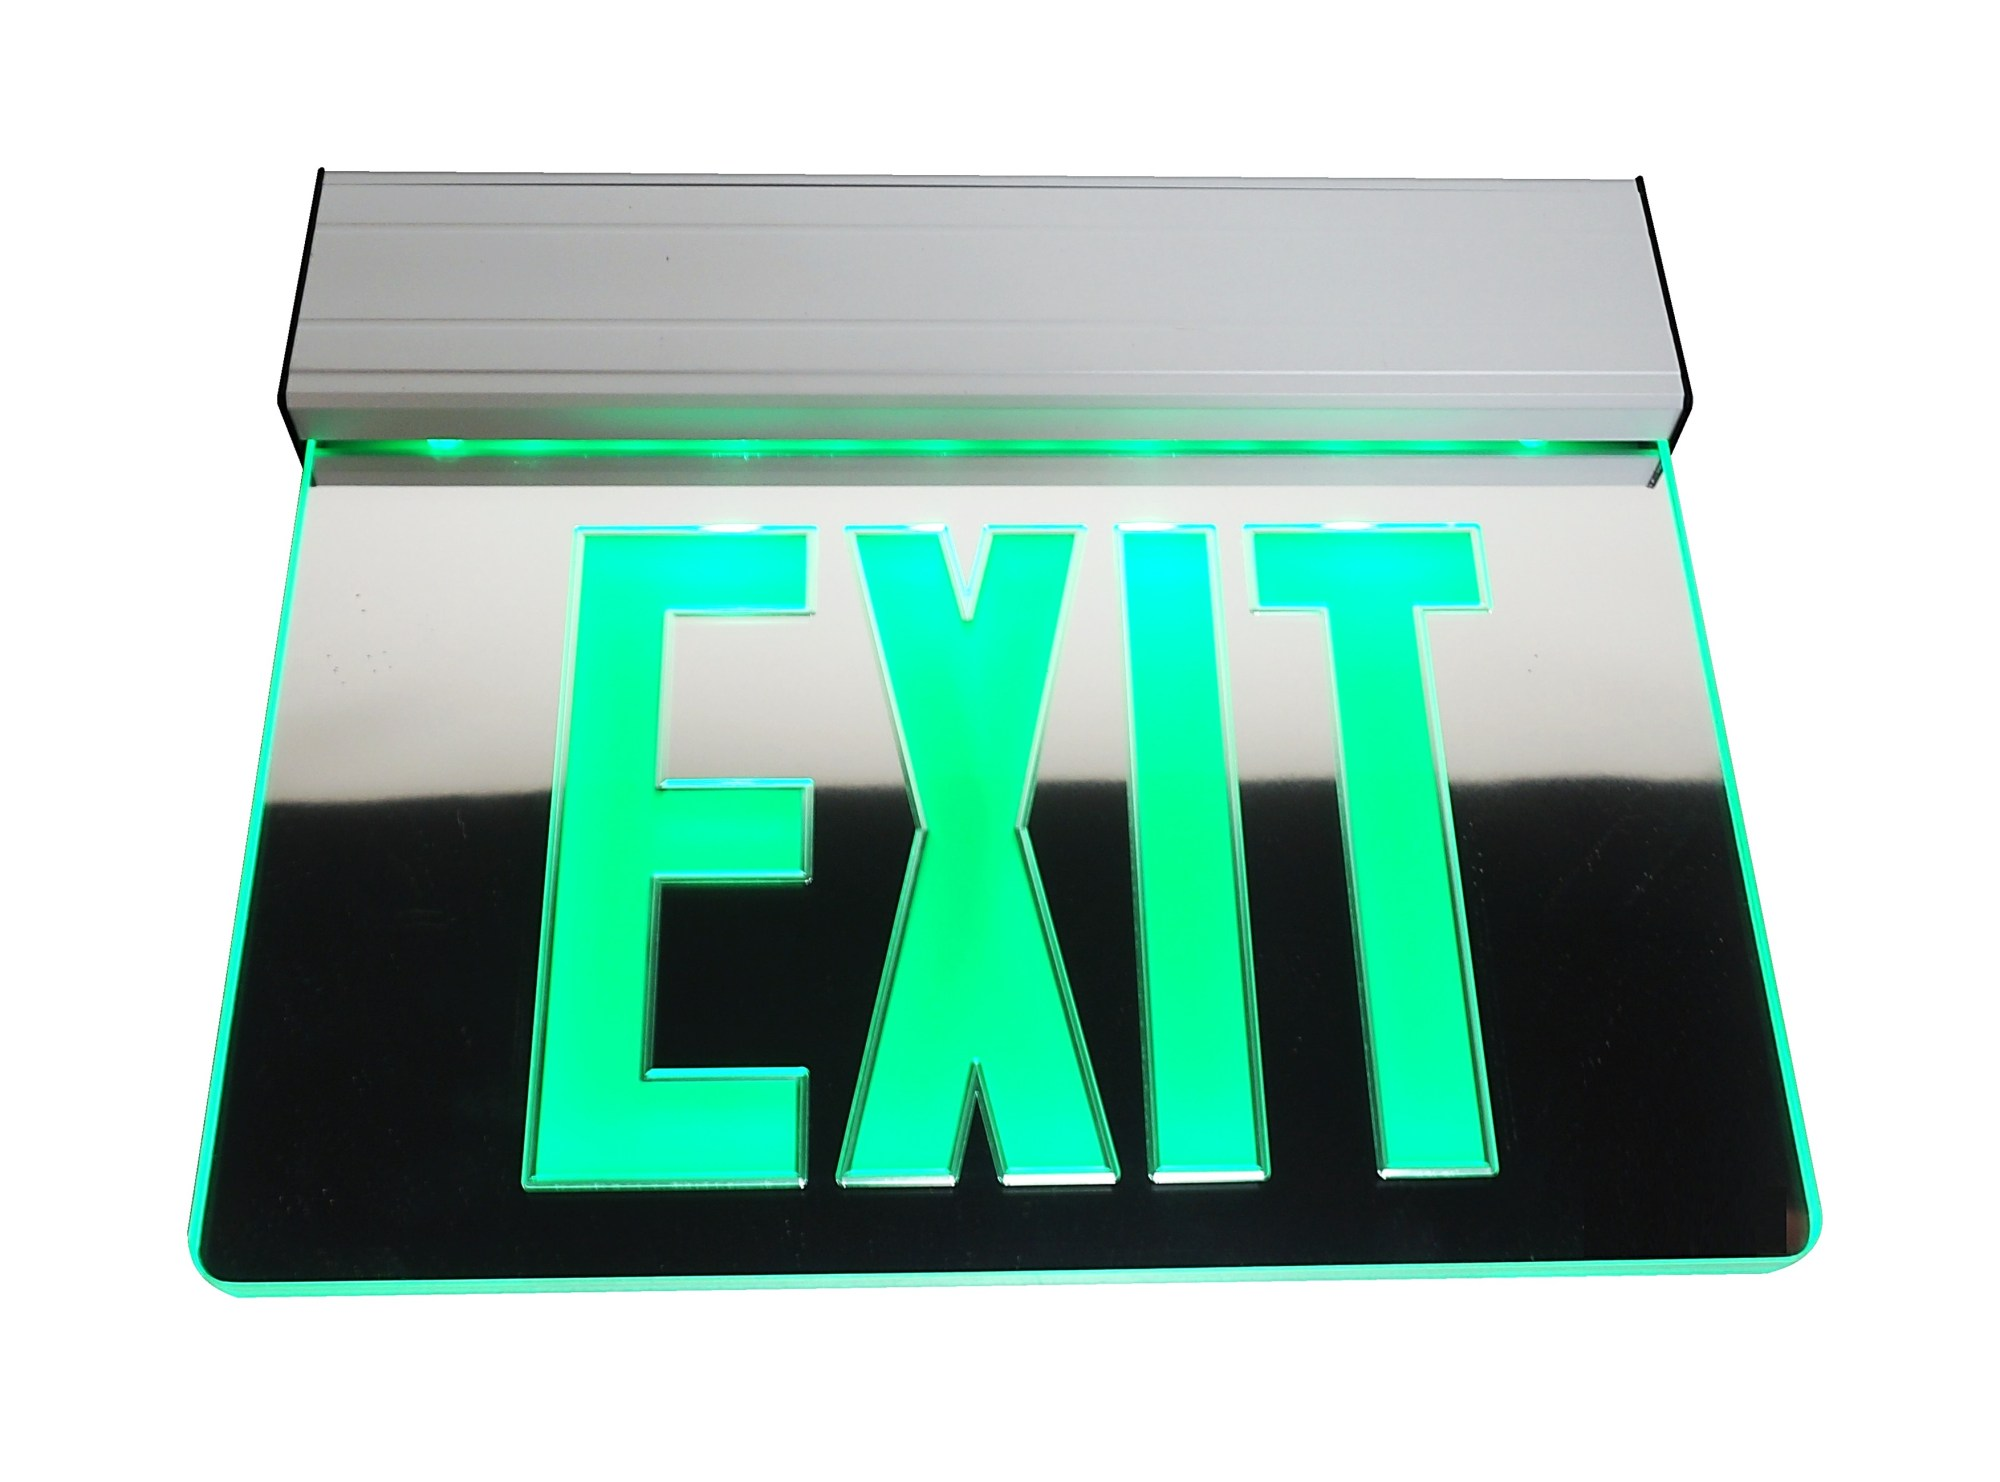 hight resolution of nicor exit sign wiring diagram wiring library traffic signal wiring diagram nicor exit sign wiring diagram